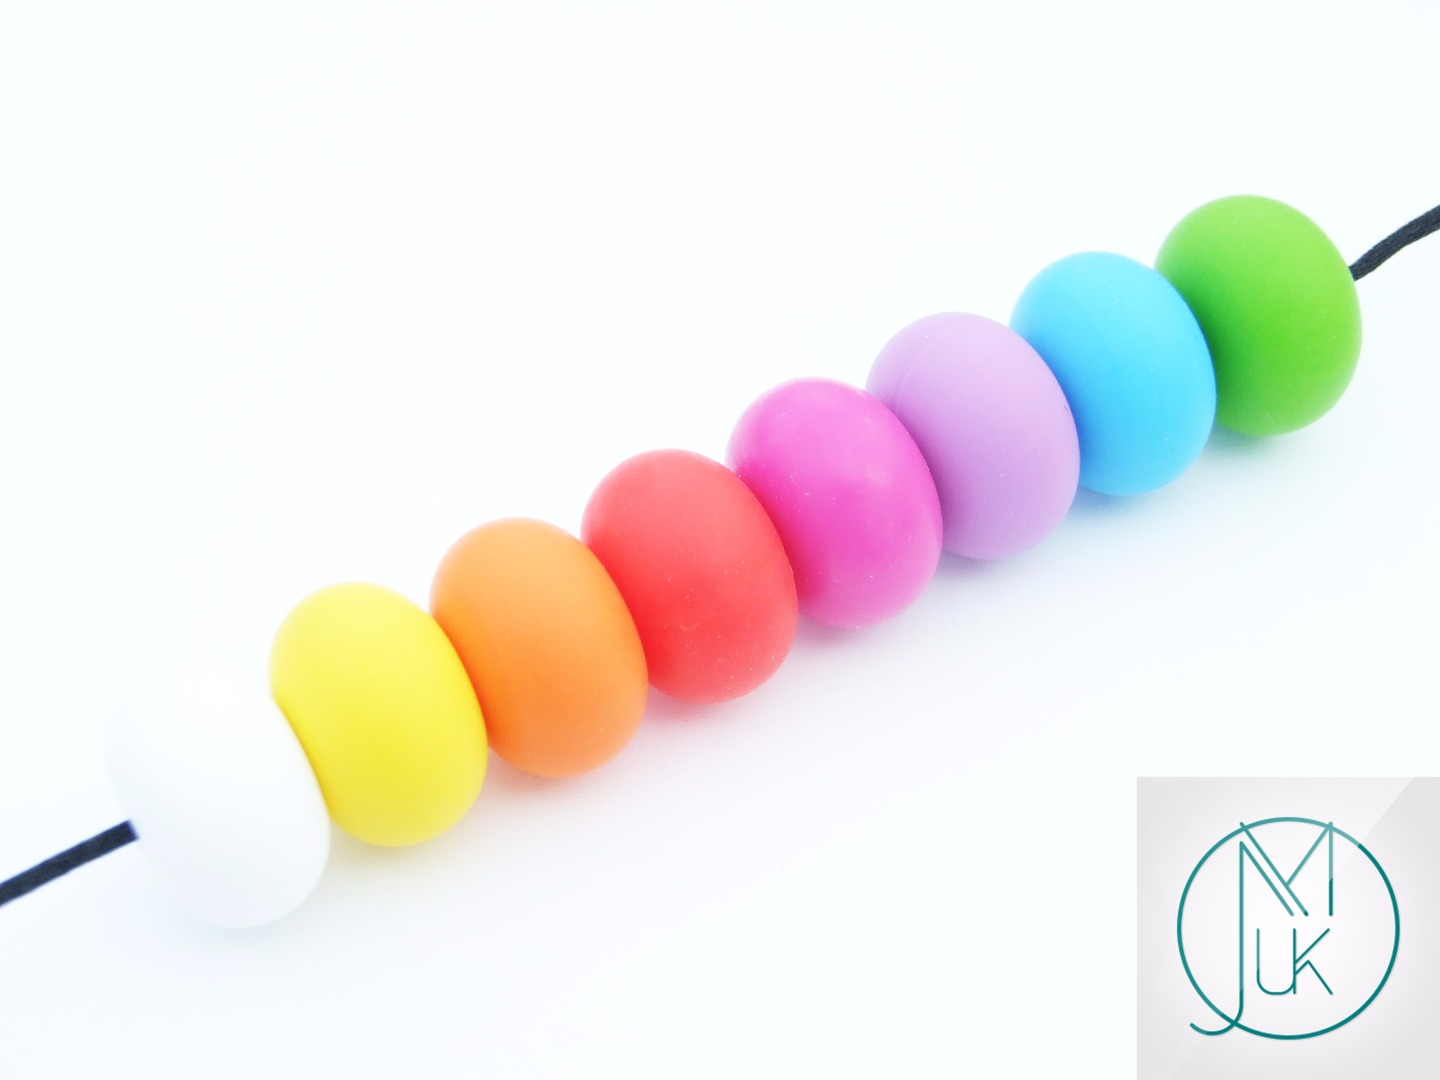 2x Grape Oval Silicone Beads for Teething Jewellery 16 Colors to Choose